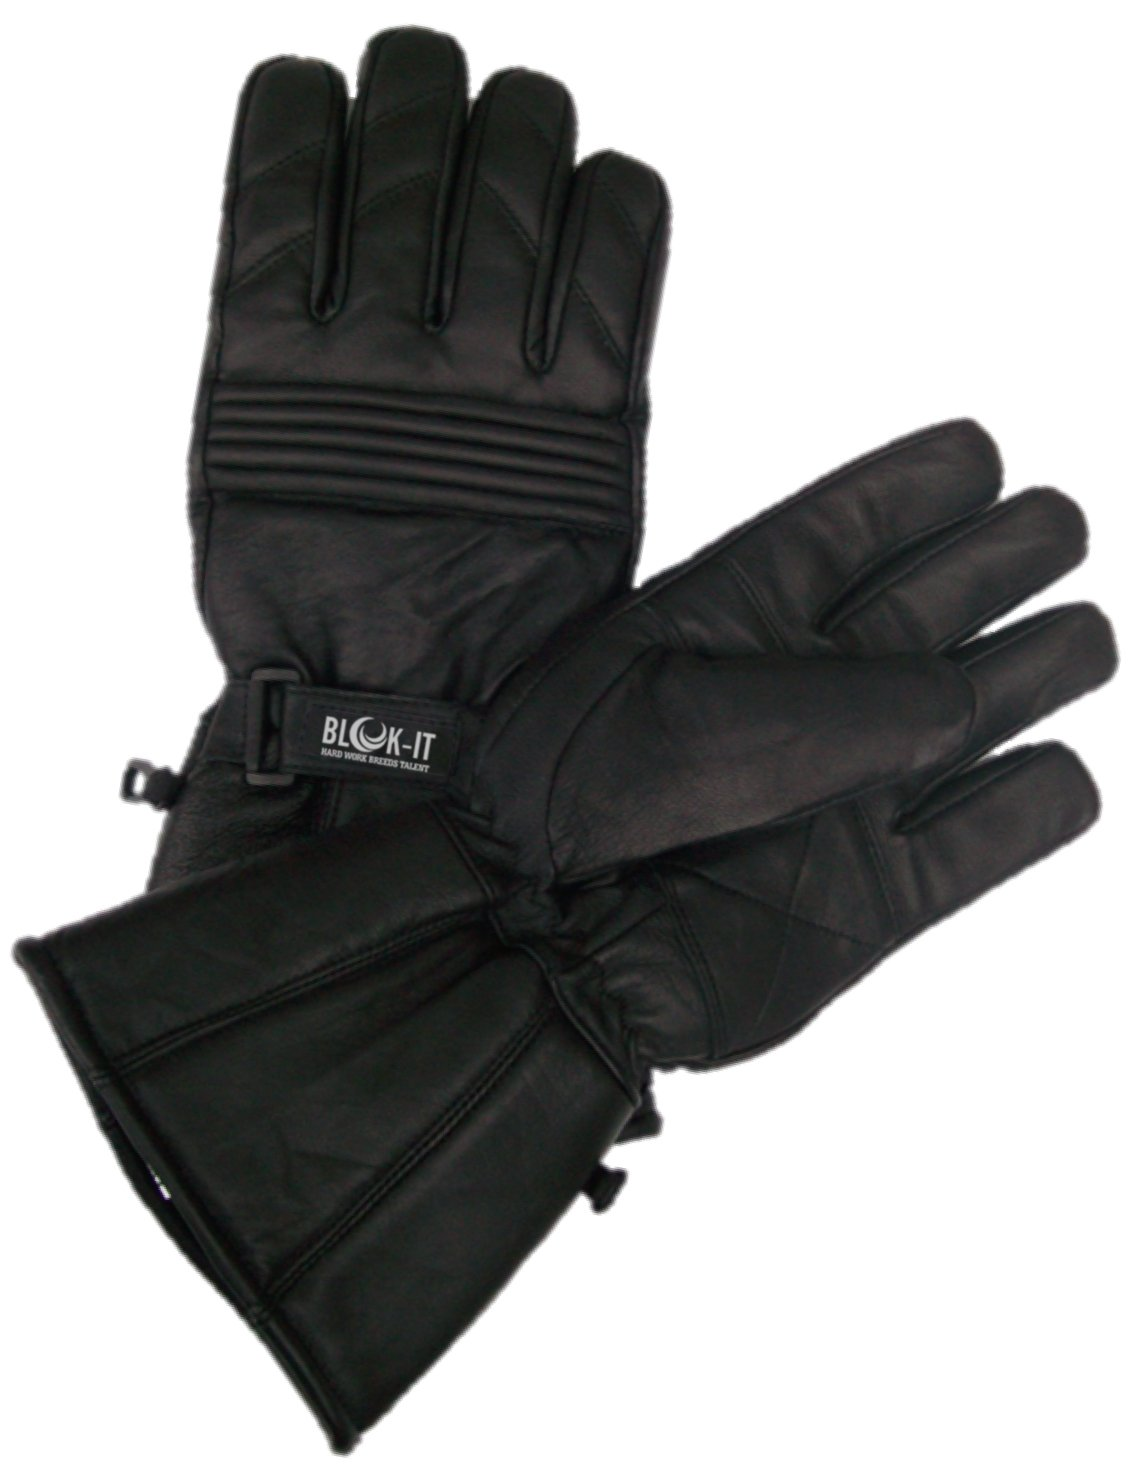 Motorcycle gloves tight or loose - The Blok It Motorcycle Gloves Are A Great Pair Of Full Coverage Gloves That Is Designed From All Leather Material This Thick Material Is Perfect For